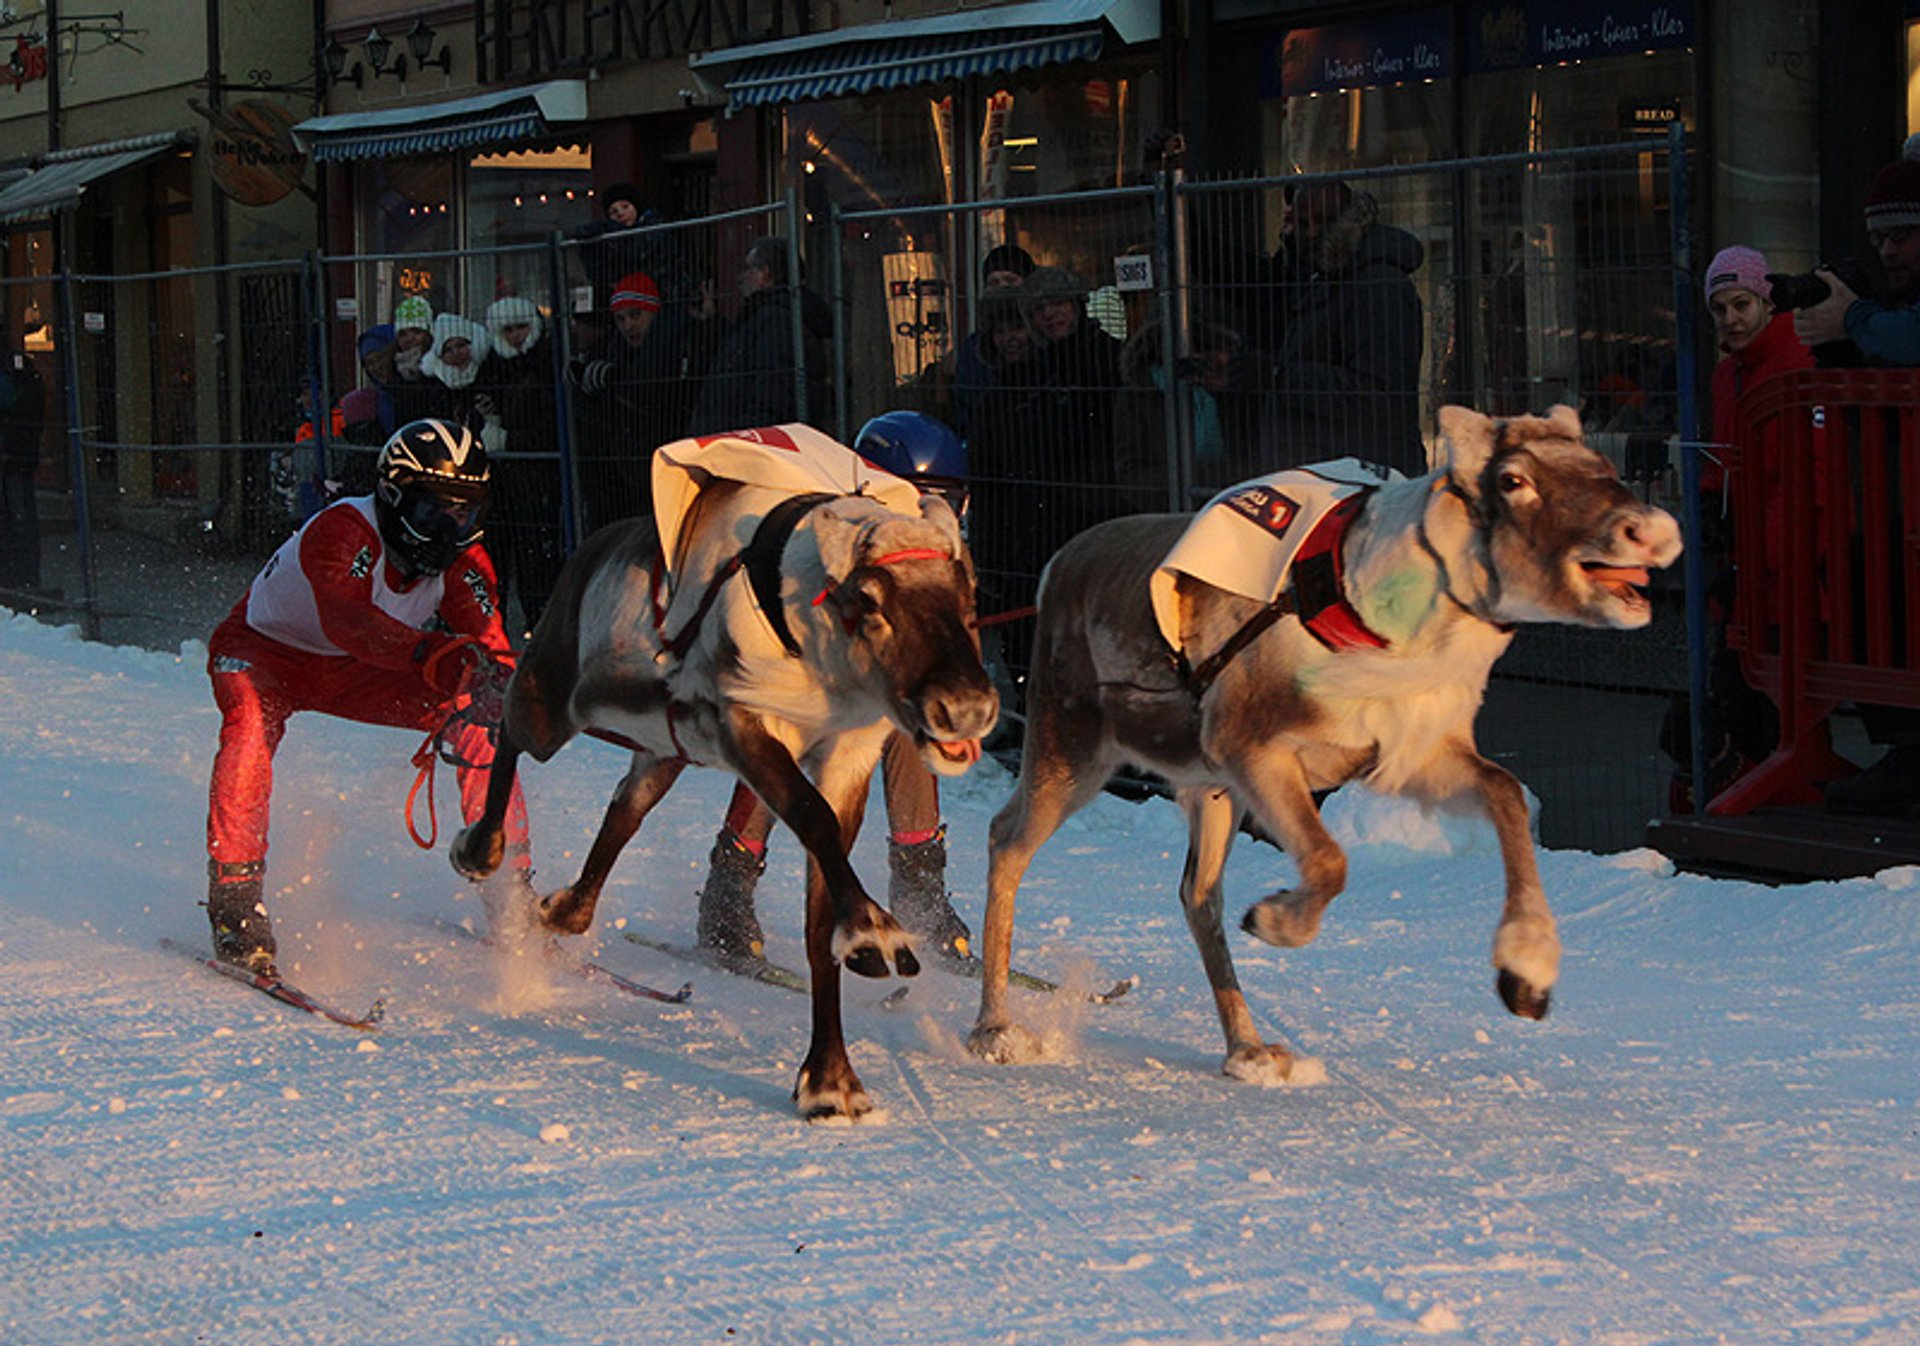 The reindeer can run up to 60 km/h. Reindeer racing in Tromsø is the right place to check whether it's true. 2020